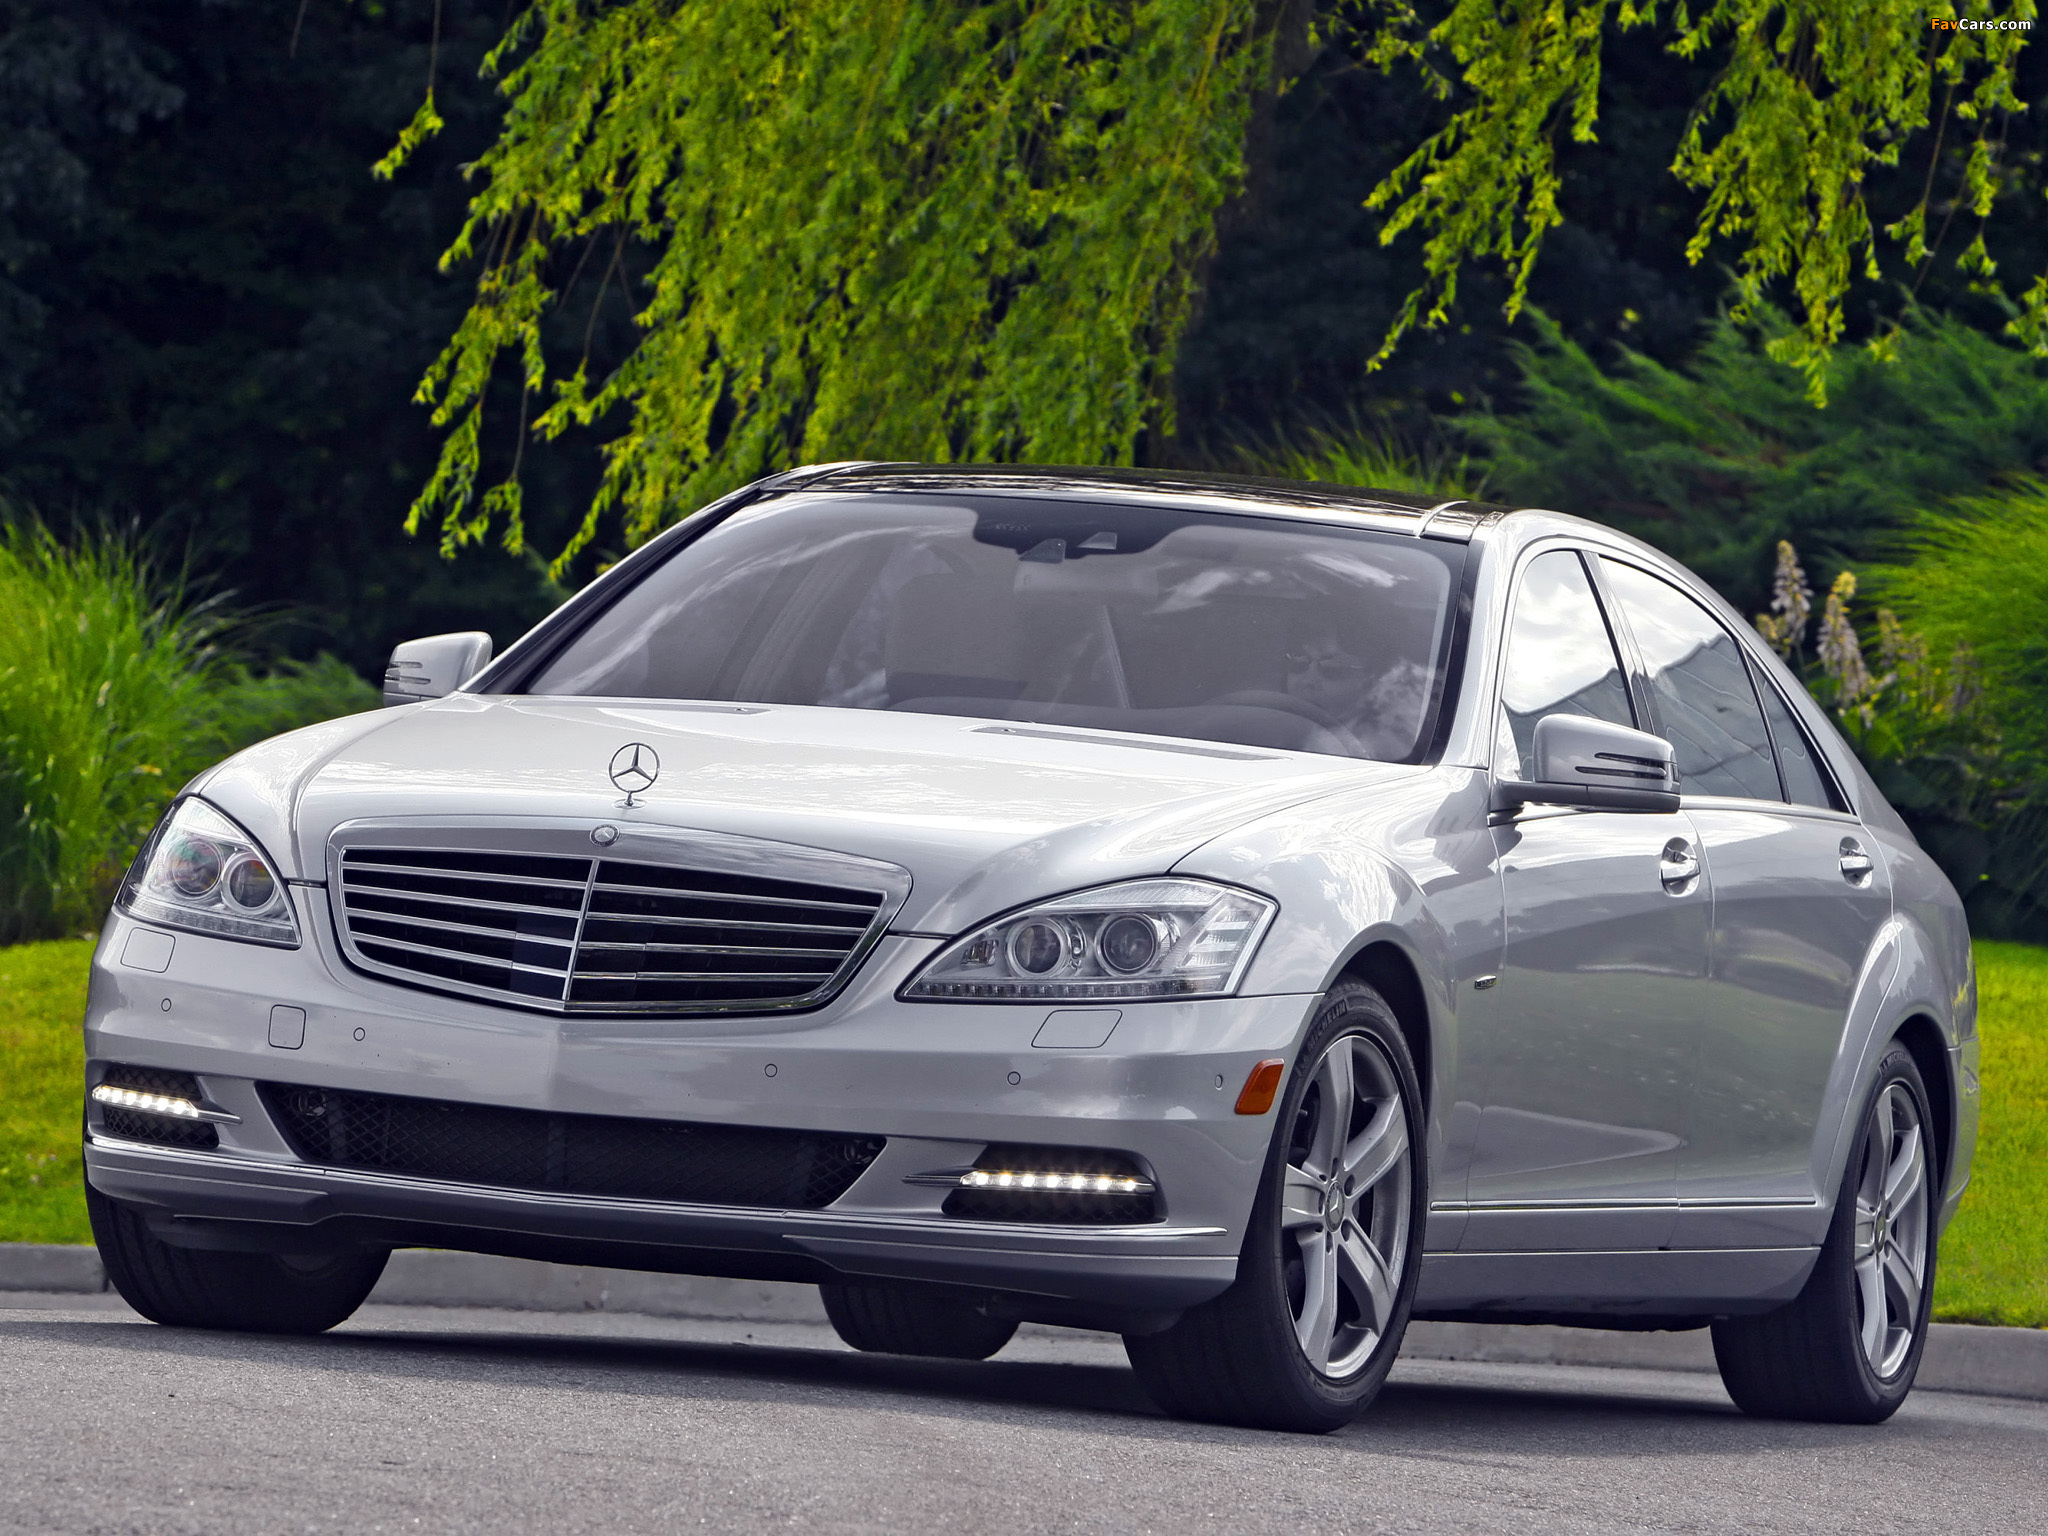 Mercedes-Benz S400 Hybrid: First Drive in the ... - ecomento